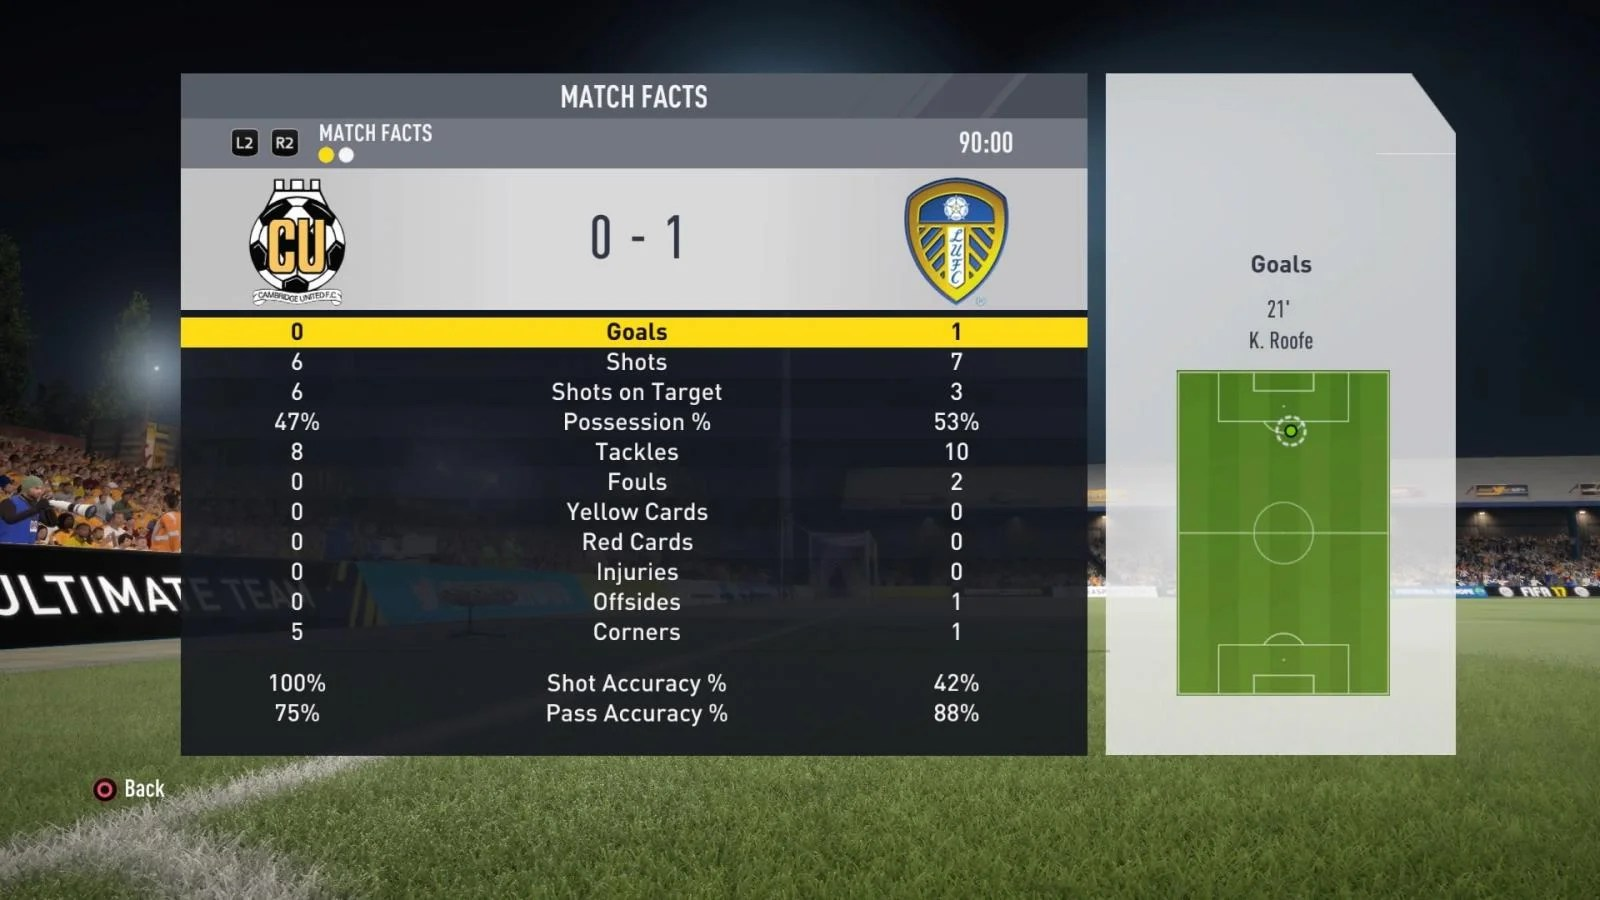 FIFA 17 Predicts Roofe Sends Leeds United Into FA Cup